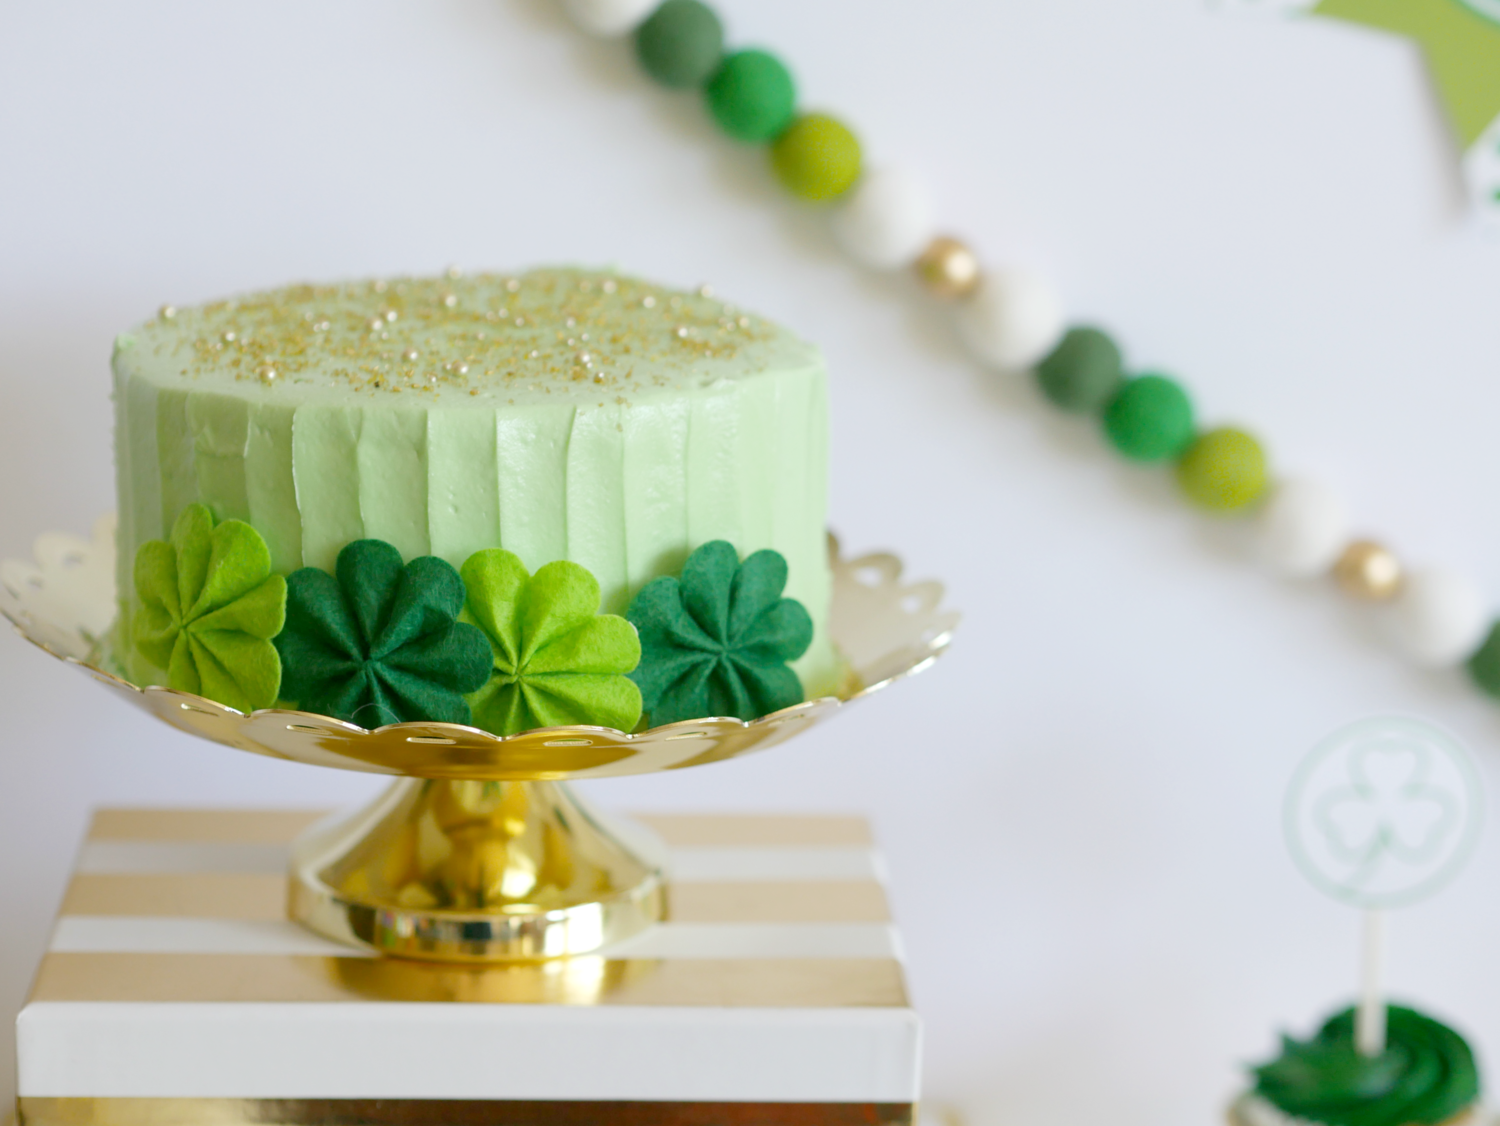 The prettiest mint green cake with gold sprinkles for Saint Patricks Day with pinwheel decorations. Party styling by Mint Event Design www.minteventdesign.com #partyideas #partydecorations #freeprintables #saintpatricksday #stpatricksday #shamrock #mintgreen #partycake